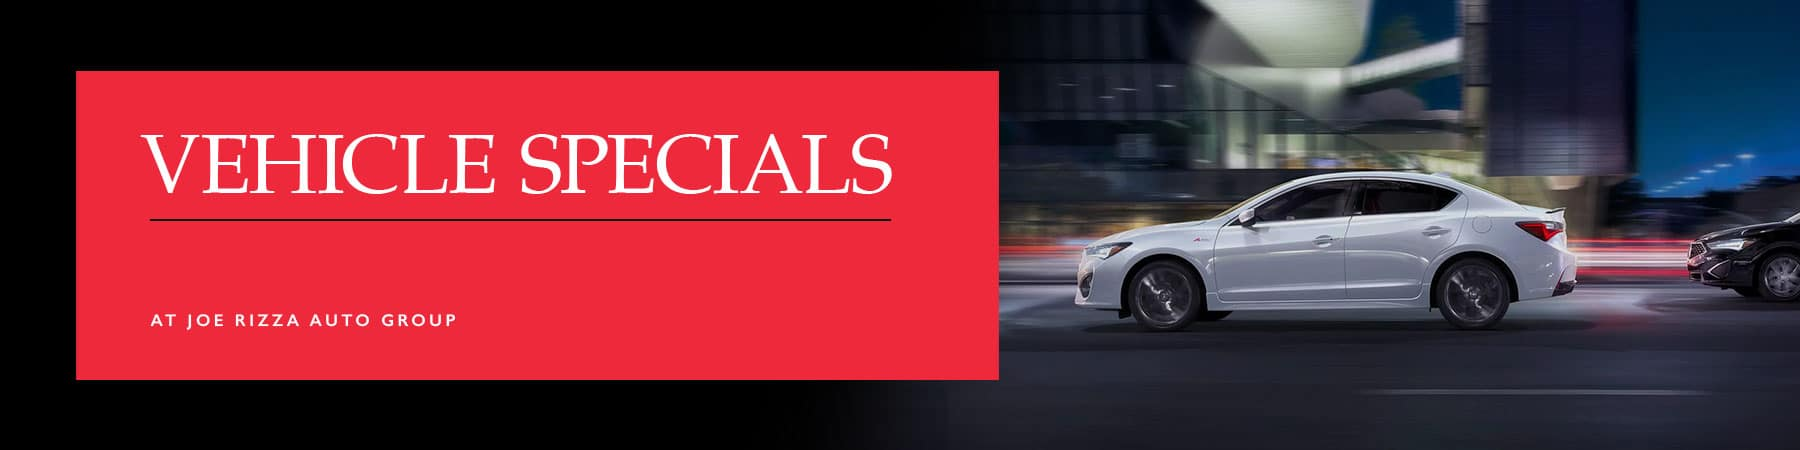 Rizza Auto Group Vehicle Specials